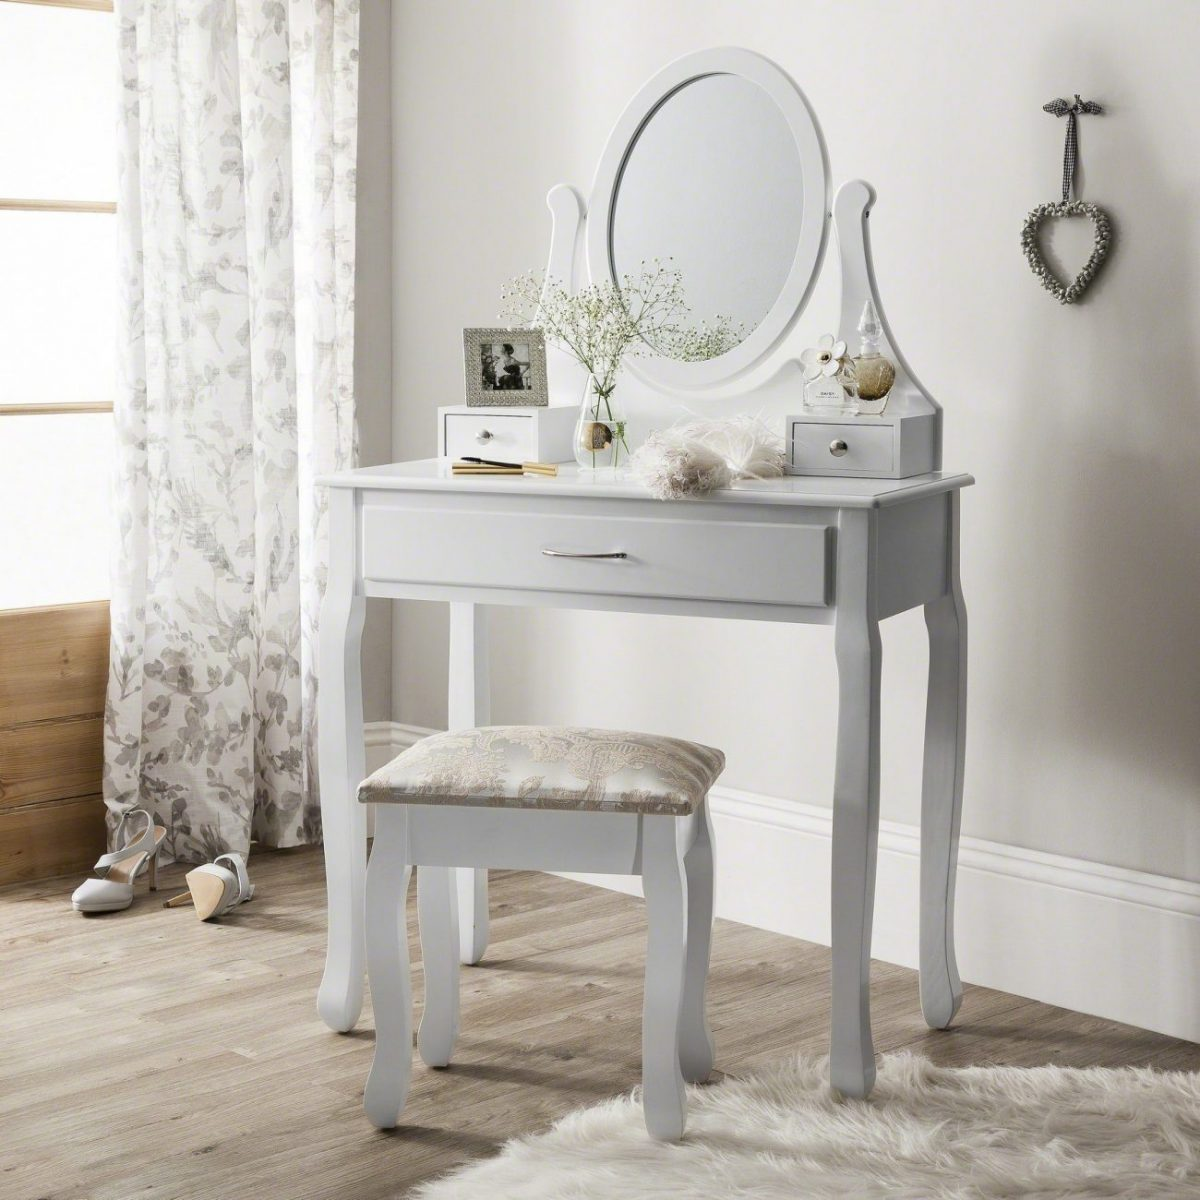 Pocket Friendly Dressing Tables for Single Girls